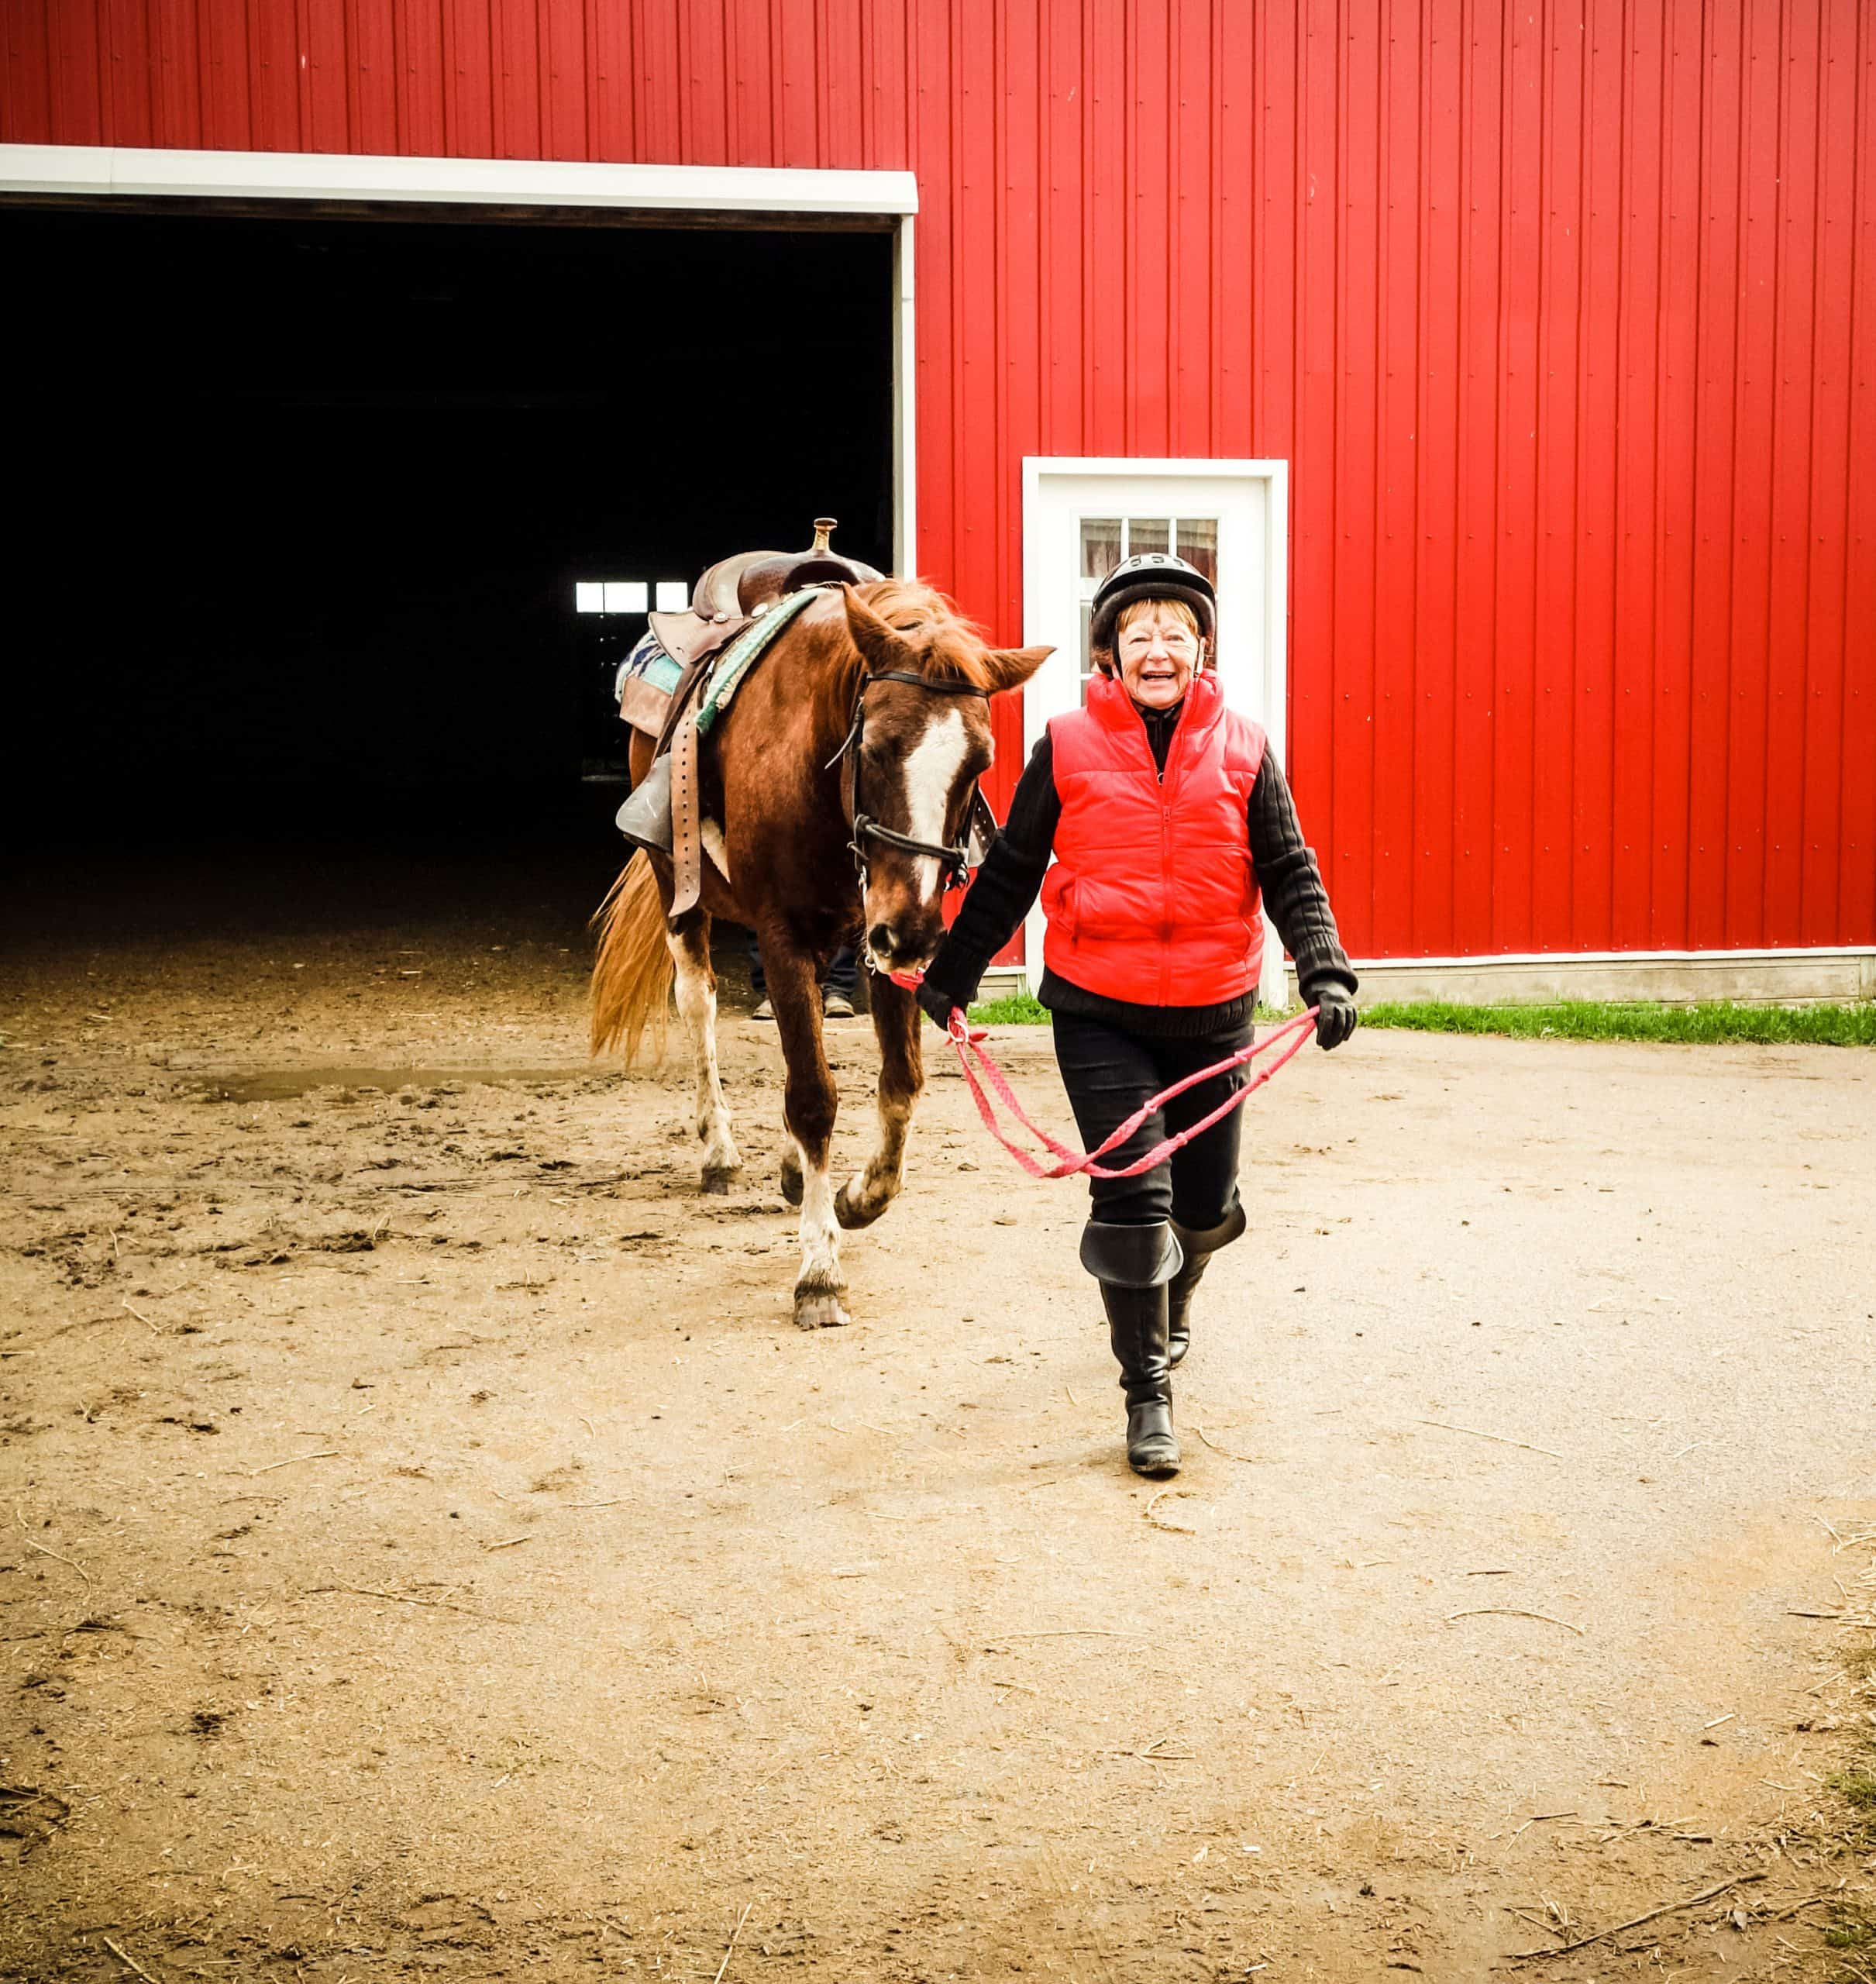 Senior citizen white woman in her 70's very pleased smiling as she is walking her horse from a  building with a large doorway.  She is wearing a red vest and protective riding gear and is holding the reins as she leads the horse from a red barn.  She is facing the camera with a big smile. There is a large dirt area in forefront for copy space.